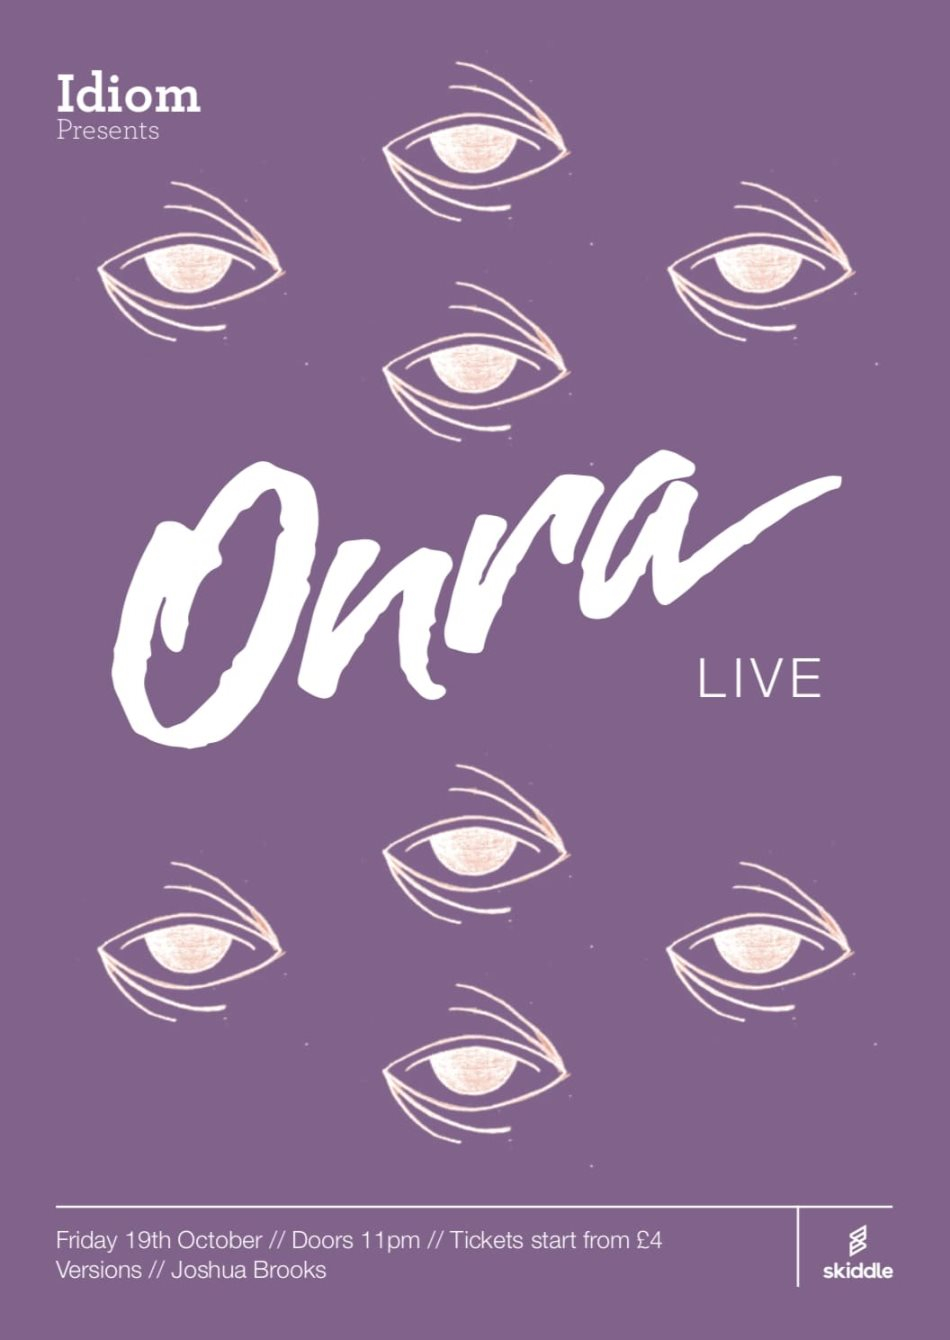 Idiom presents: Onra (Live) - Flyer front